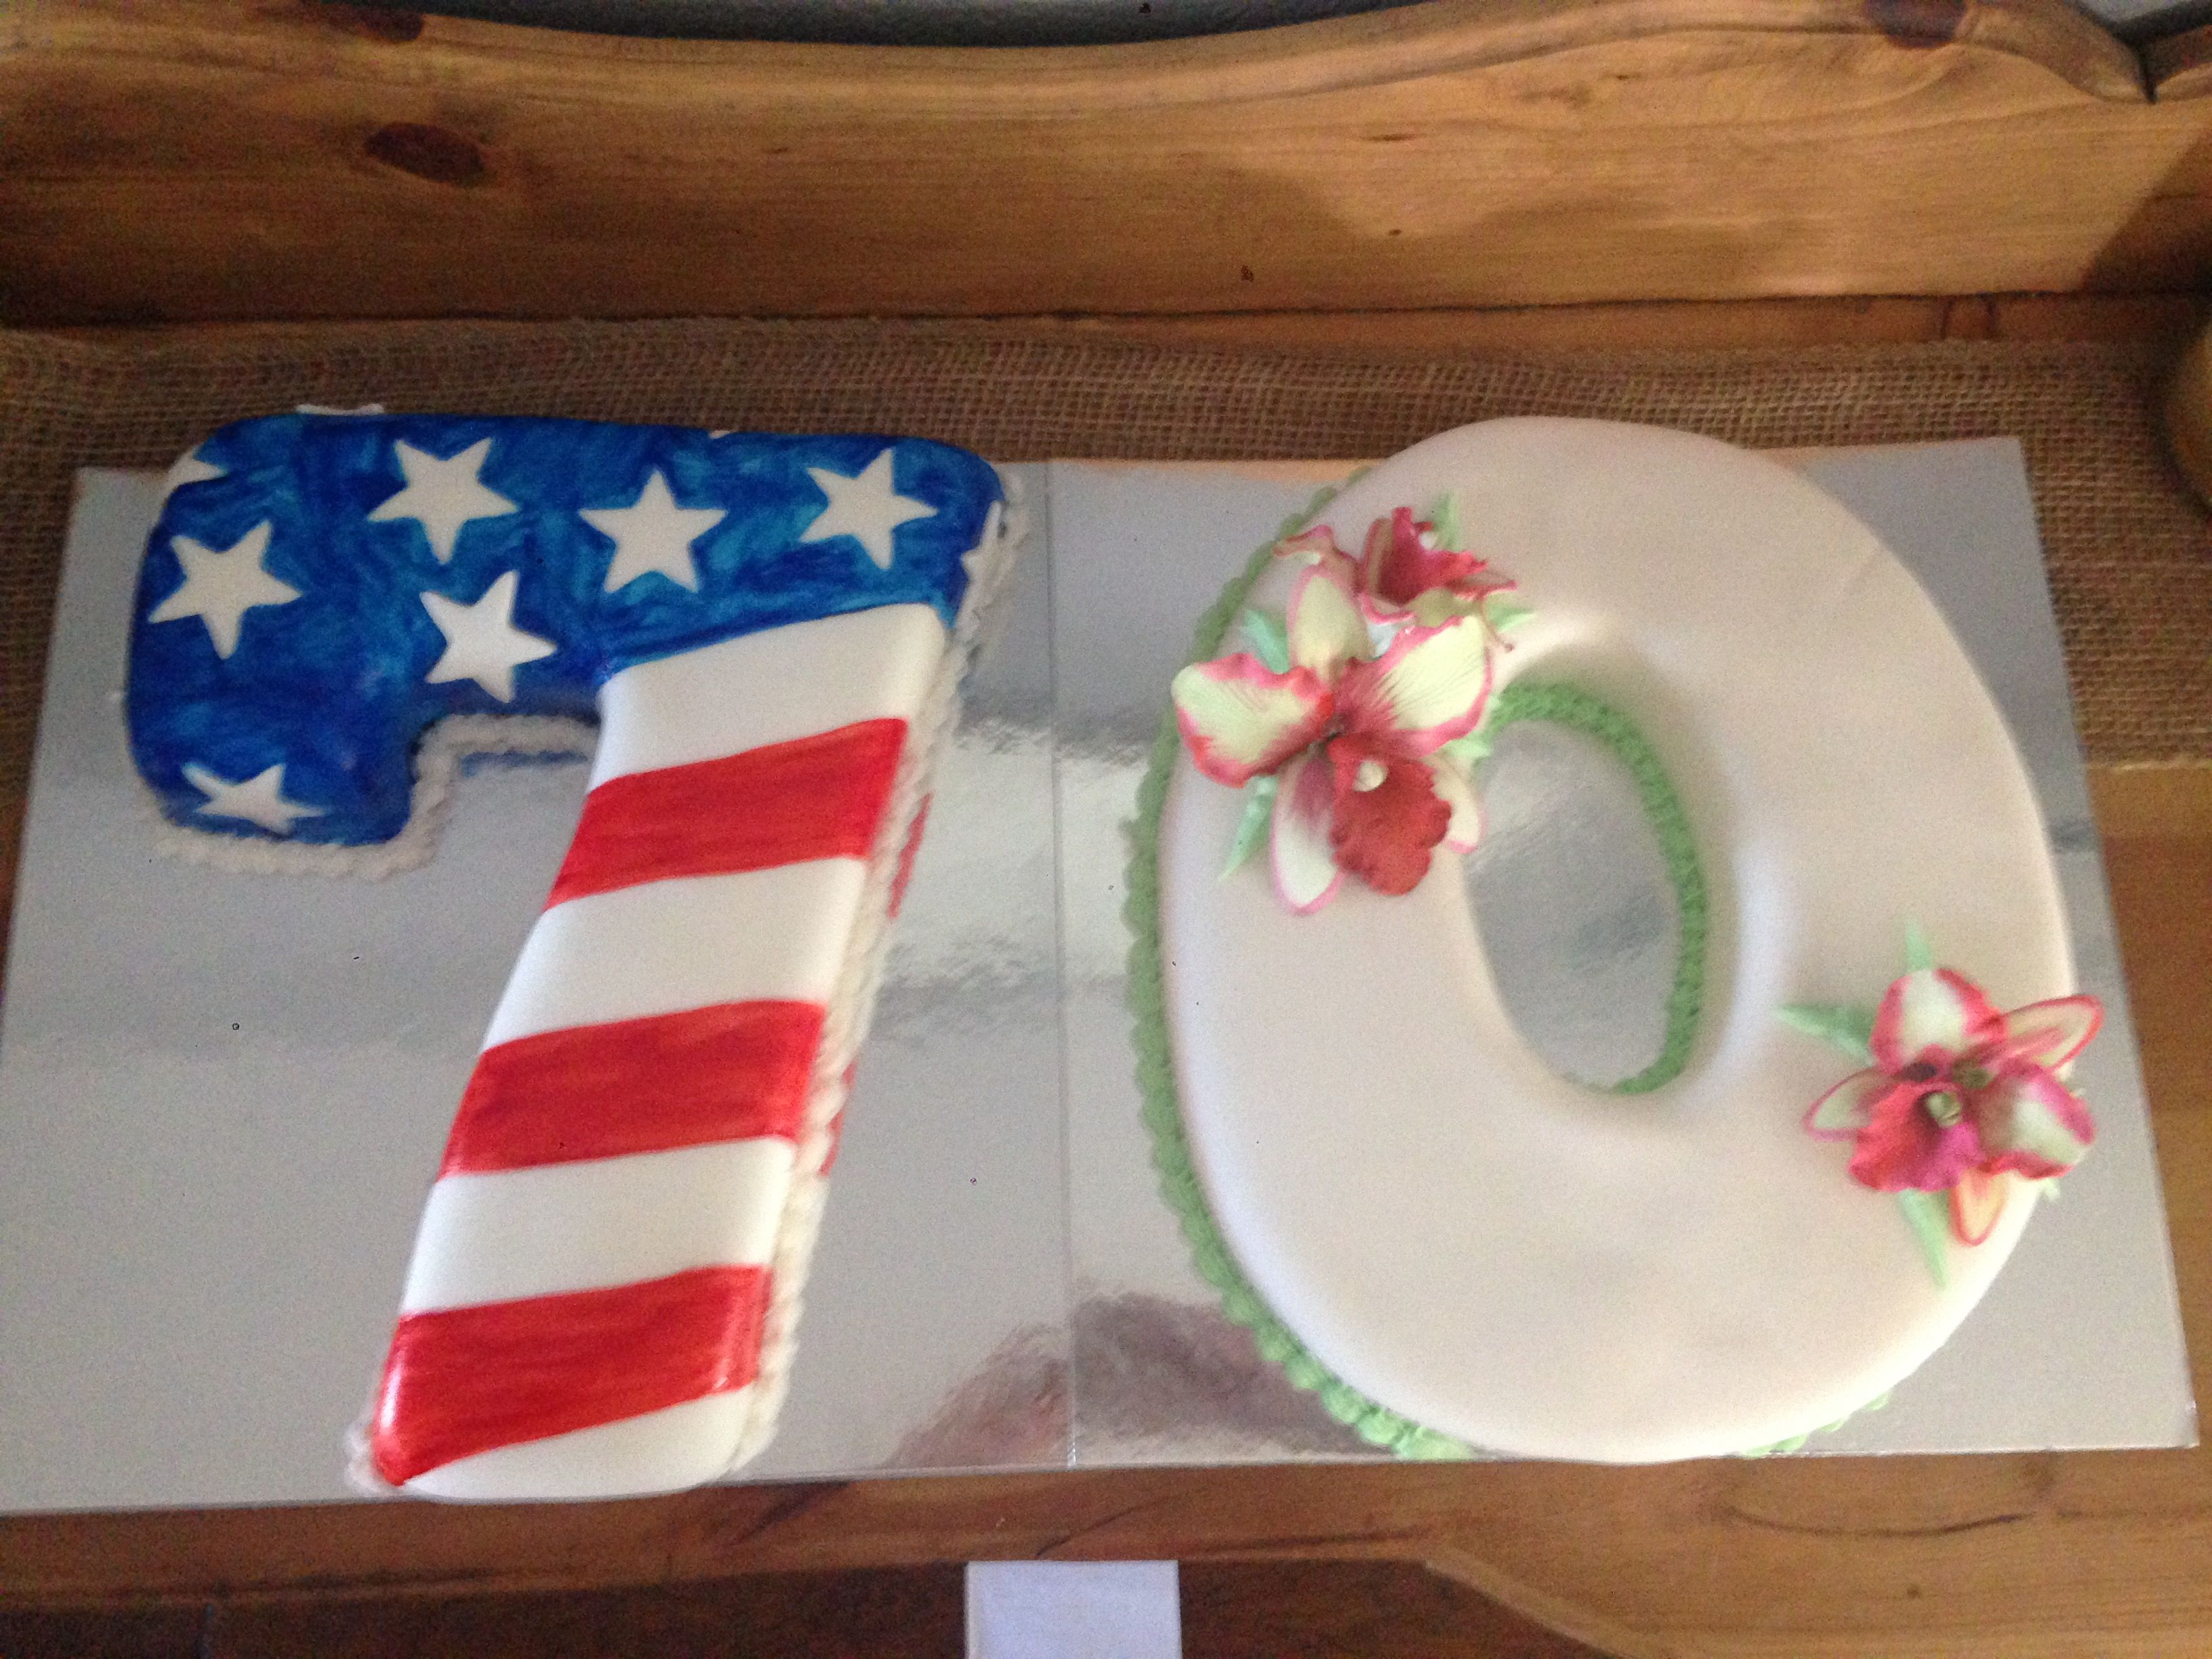 70th Birthday Cake For Grandparents Turning 70 Together Patriotic